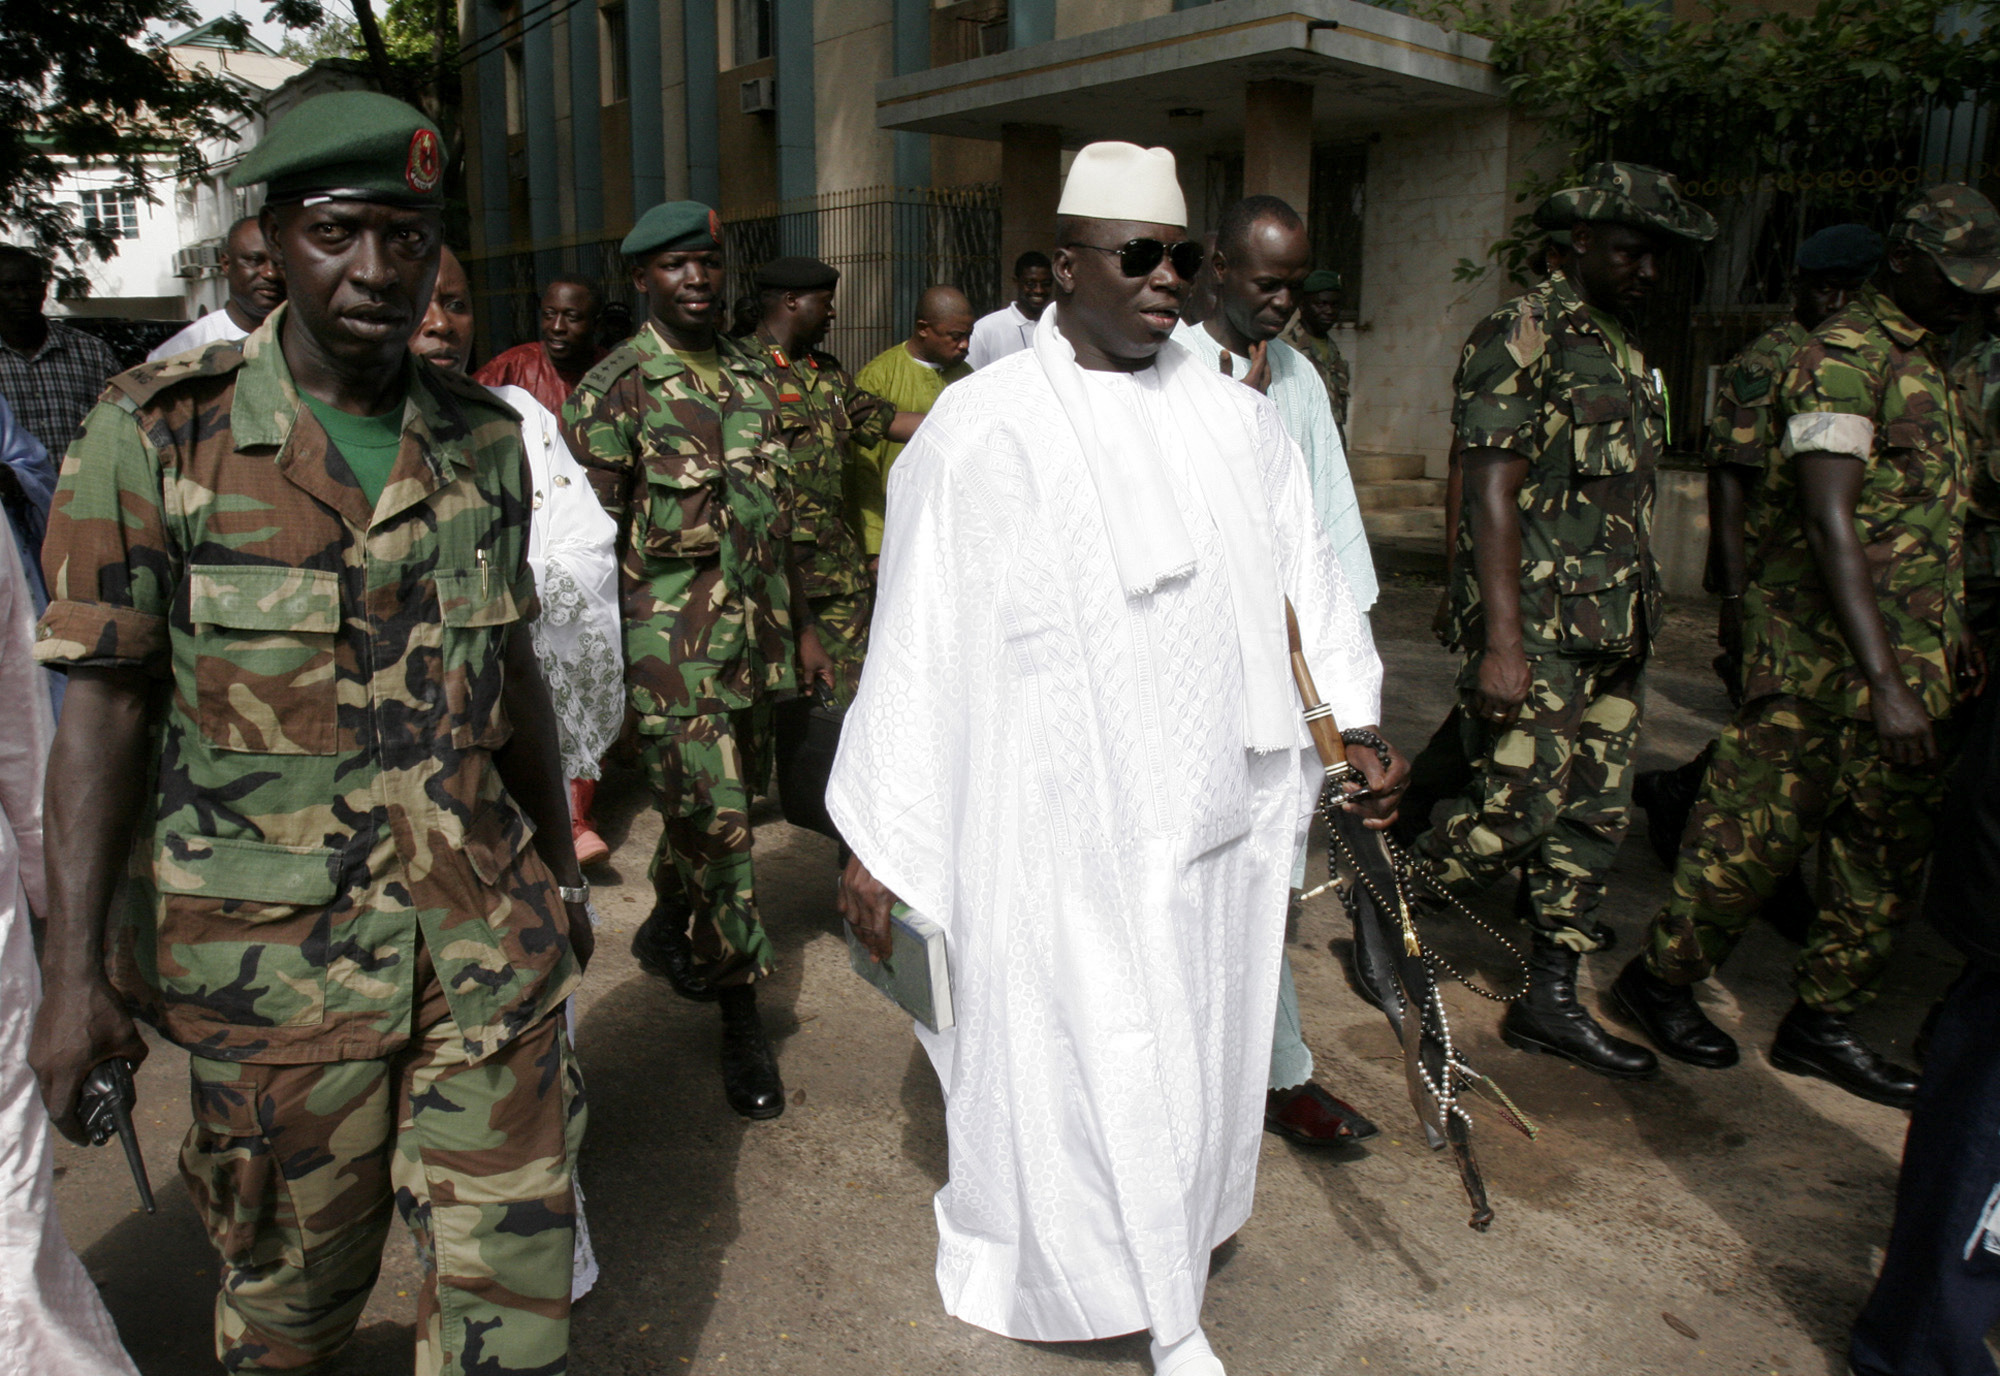 BREAKING NEWS!!! FEW HRS AFTER PRESIDENT ADAMA BARROW WAS SWORN IN, YAHYA JAMMEH DID THE MOST SCARY THING EVER